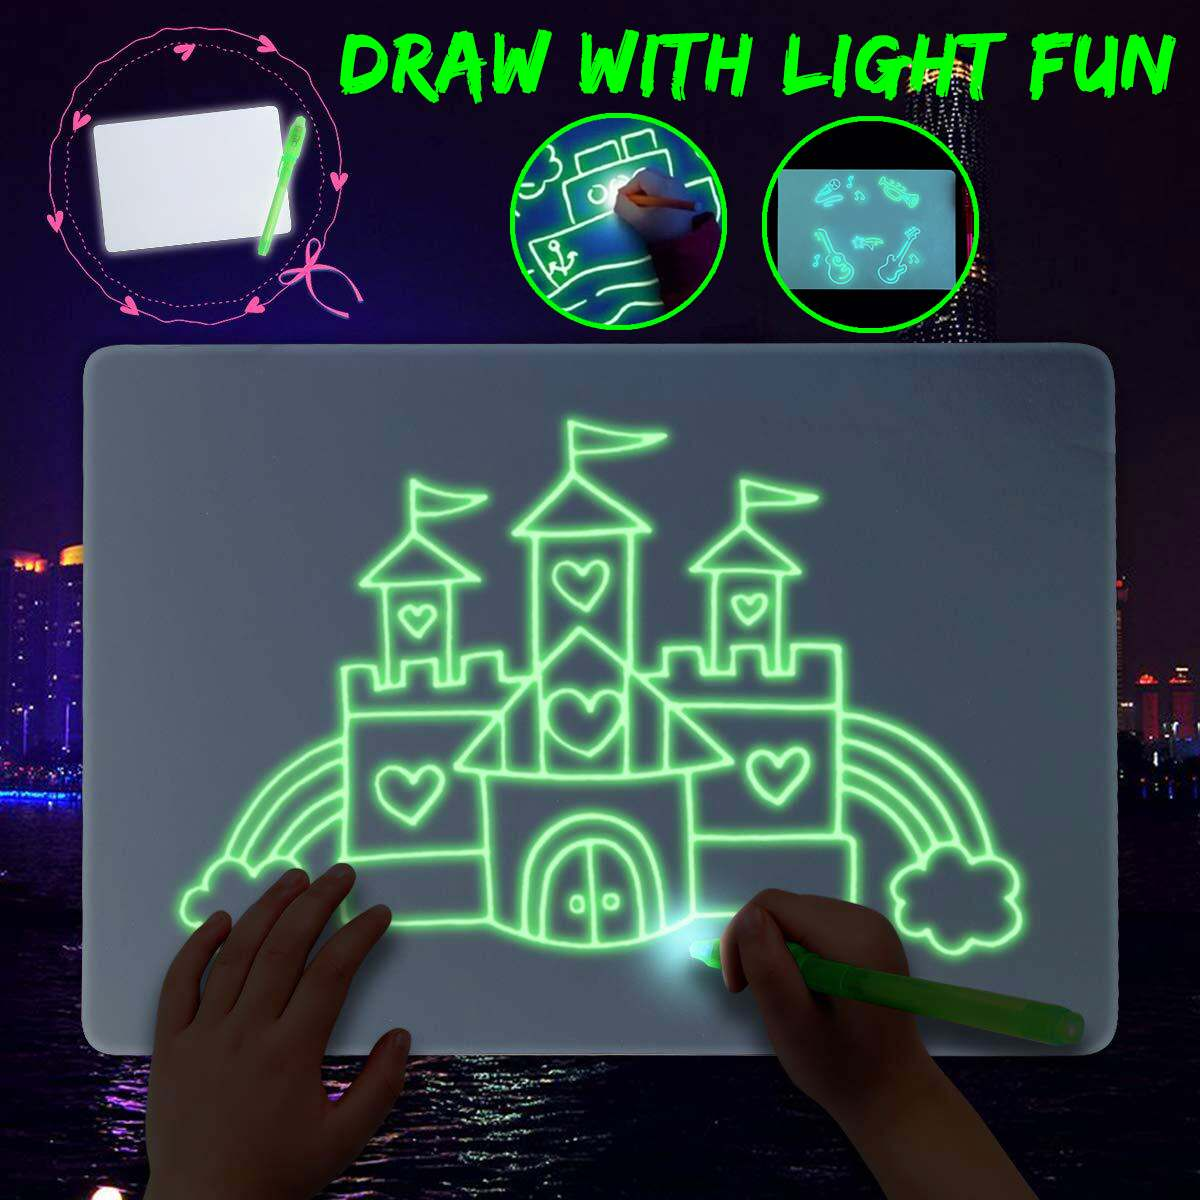 1pcs A3 A4 A5 Luminous 3D Drawing Board Graffiti Doodle Drawing Tablet Magic Draw With Fluorescent Pen Paint Educational Toys